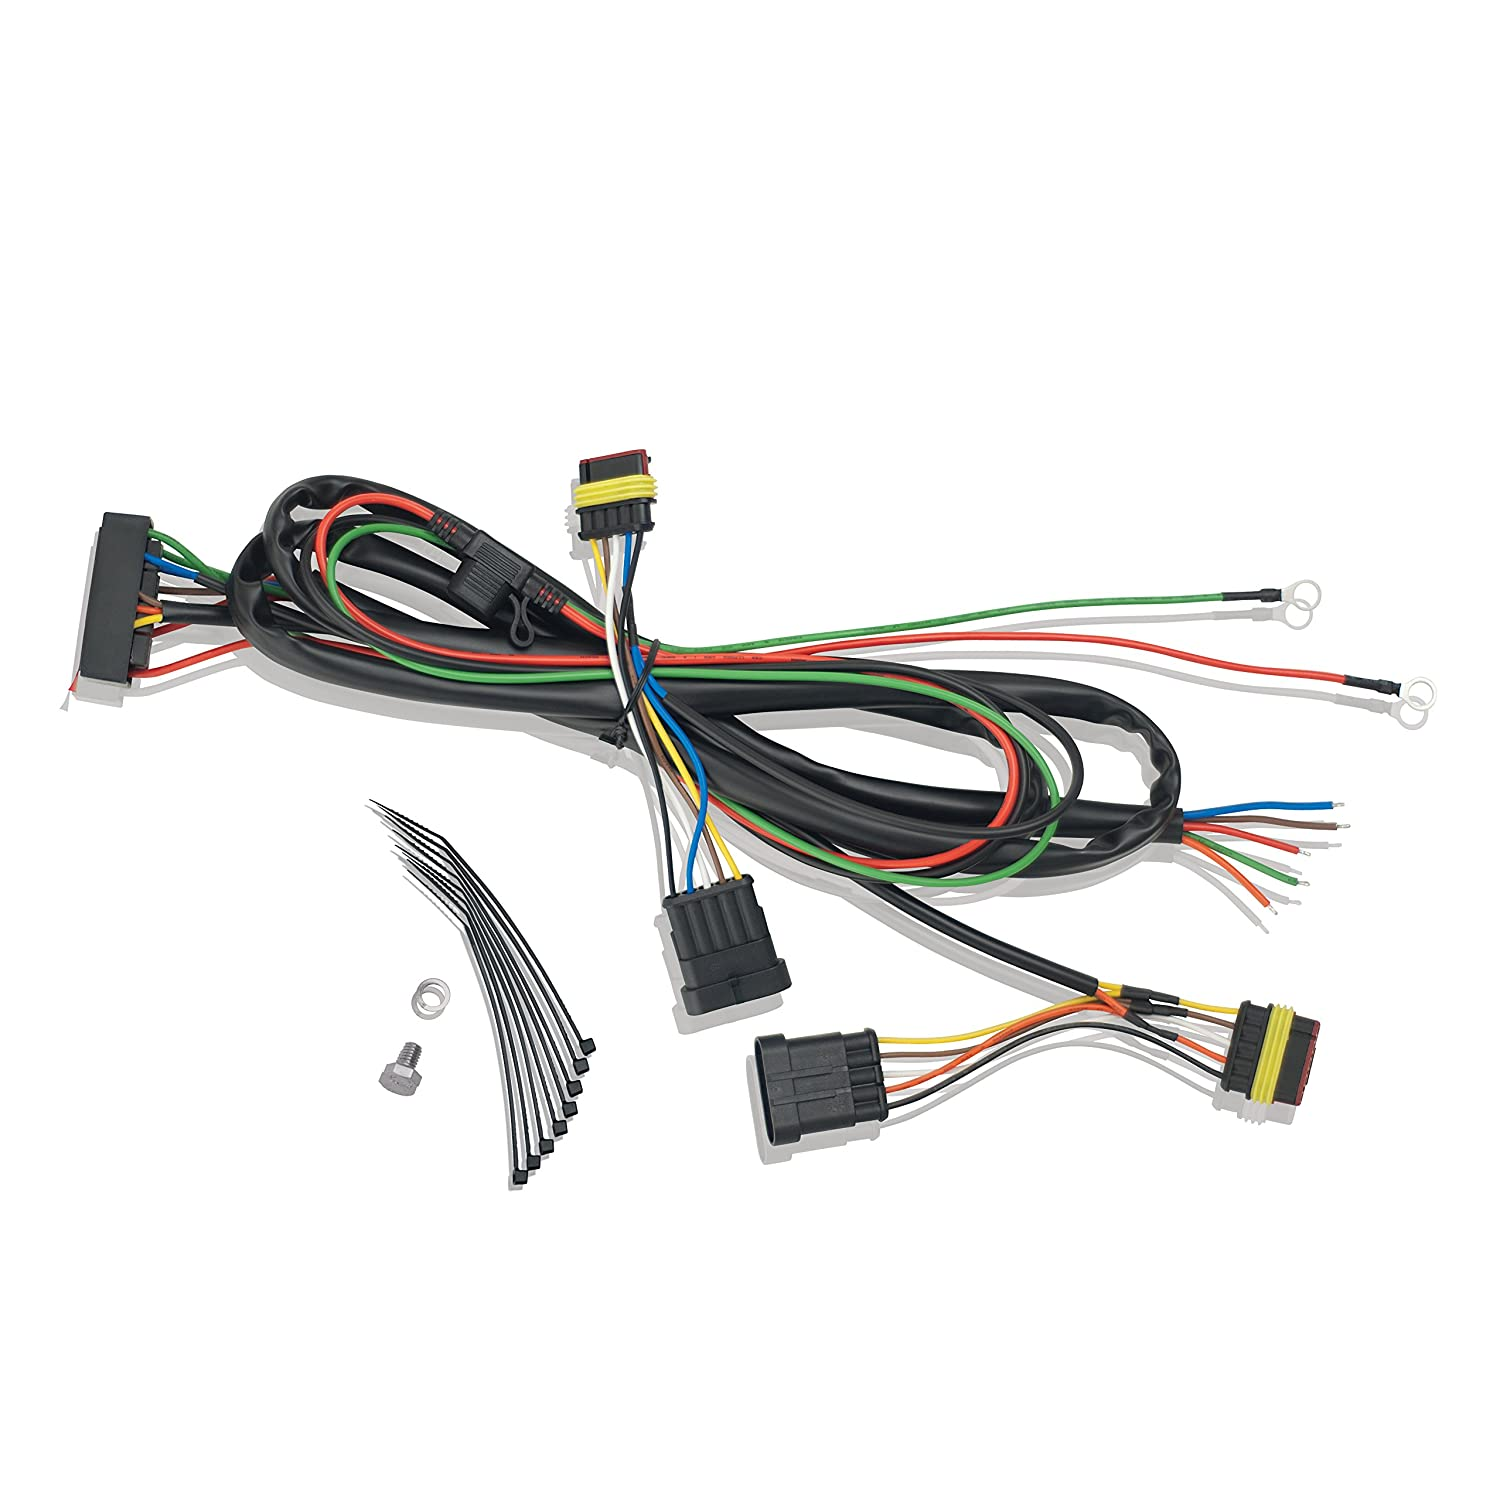 81dZHpG1lCL._SL1500_ amazon com show chrome accessories 41 162 trailer wire harness  at mifinder.co